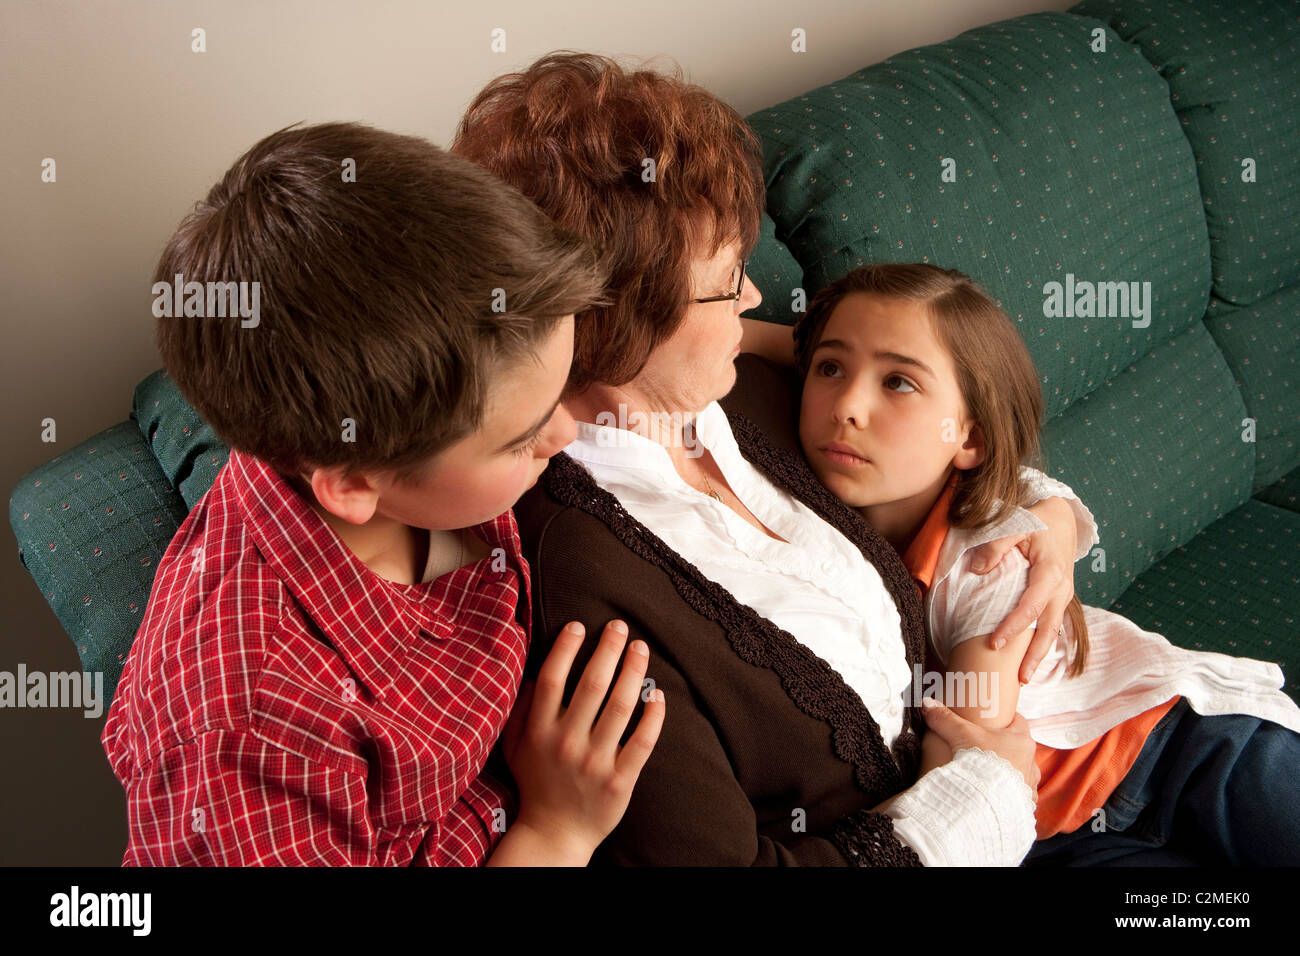 Mother And Children; Worried Family Embrace Each Other - Stock Image